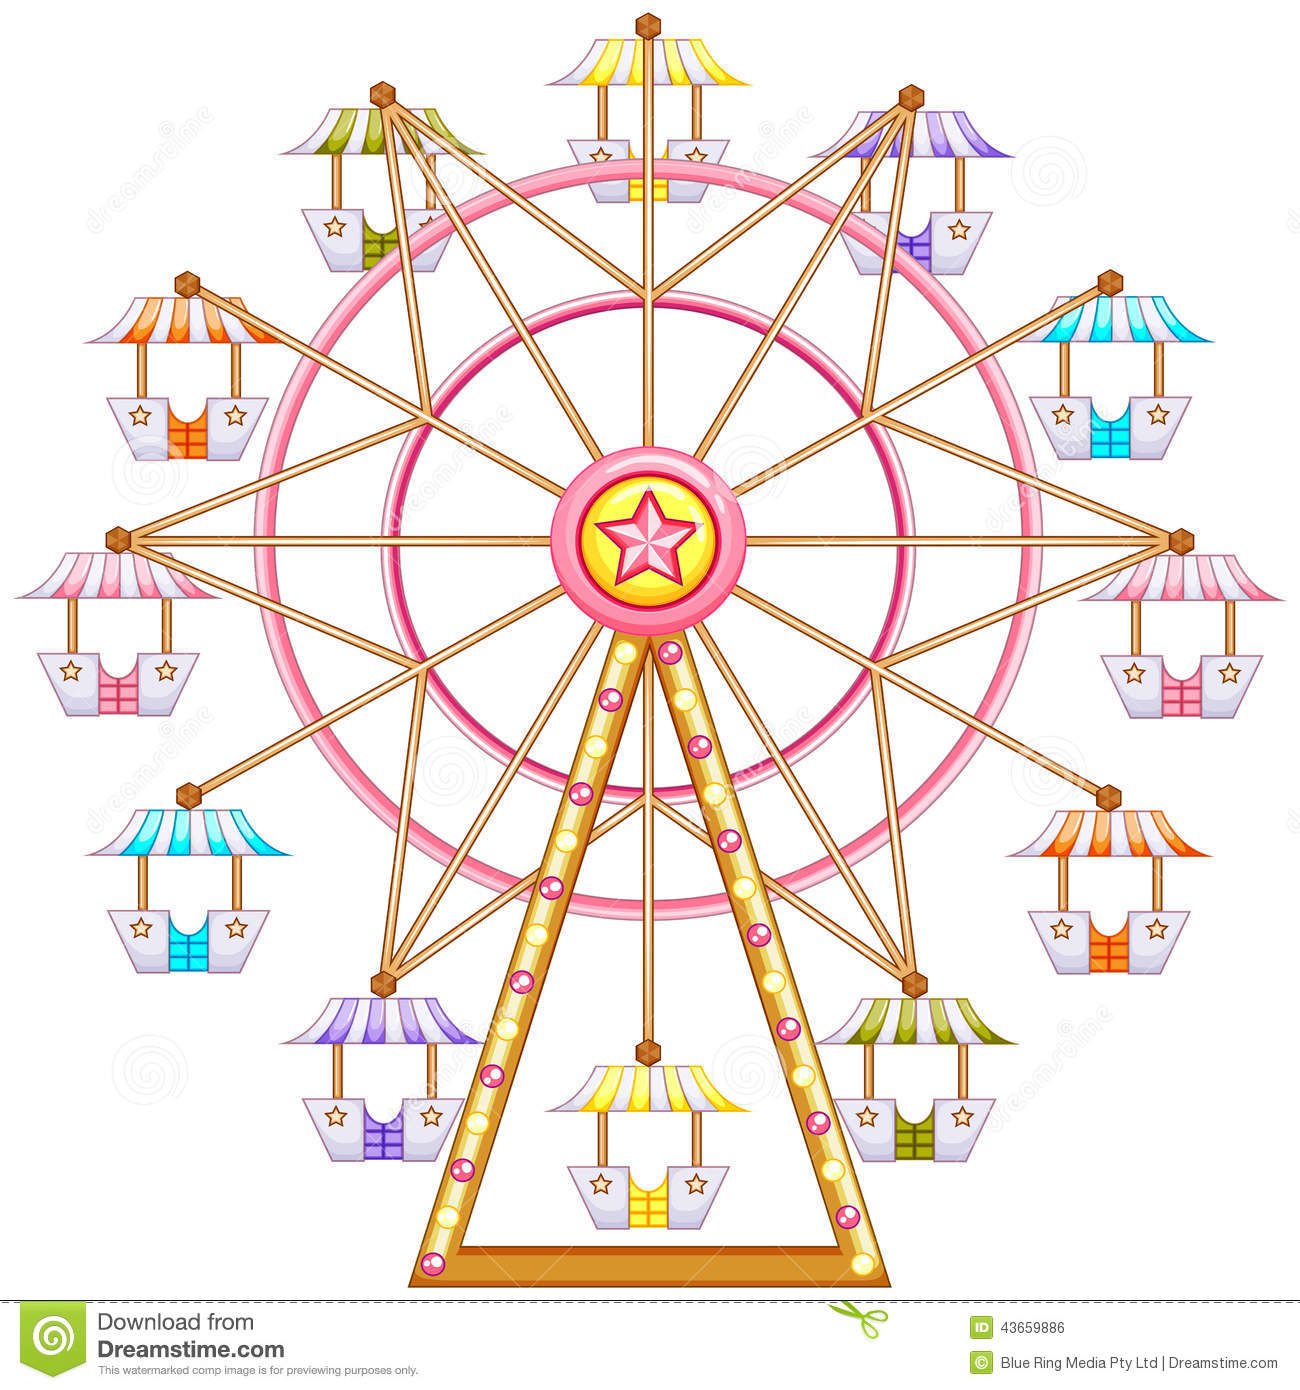 Ferris Wheel clipart #9